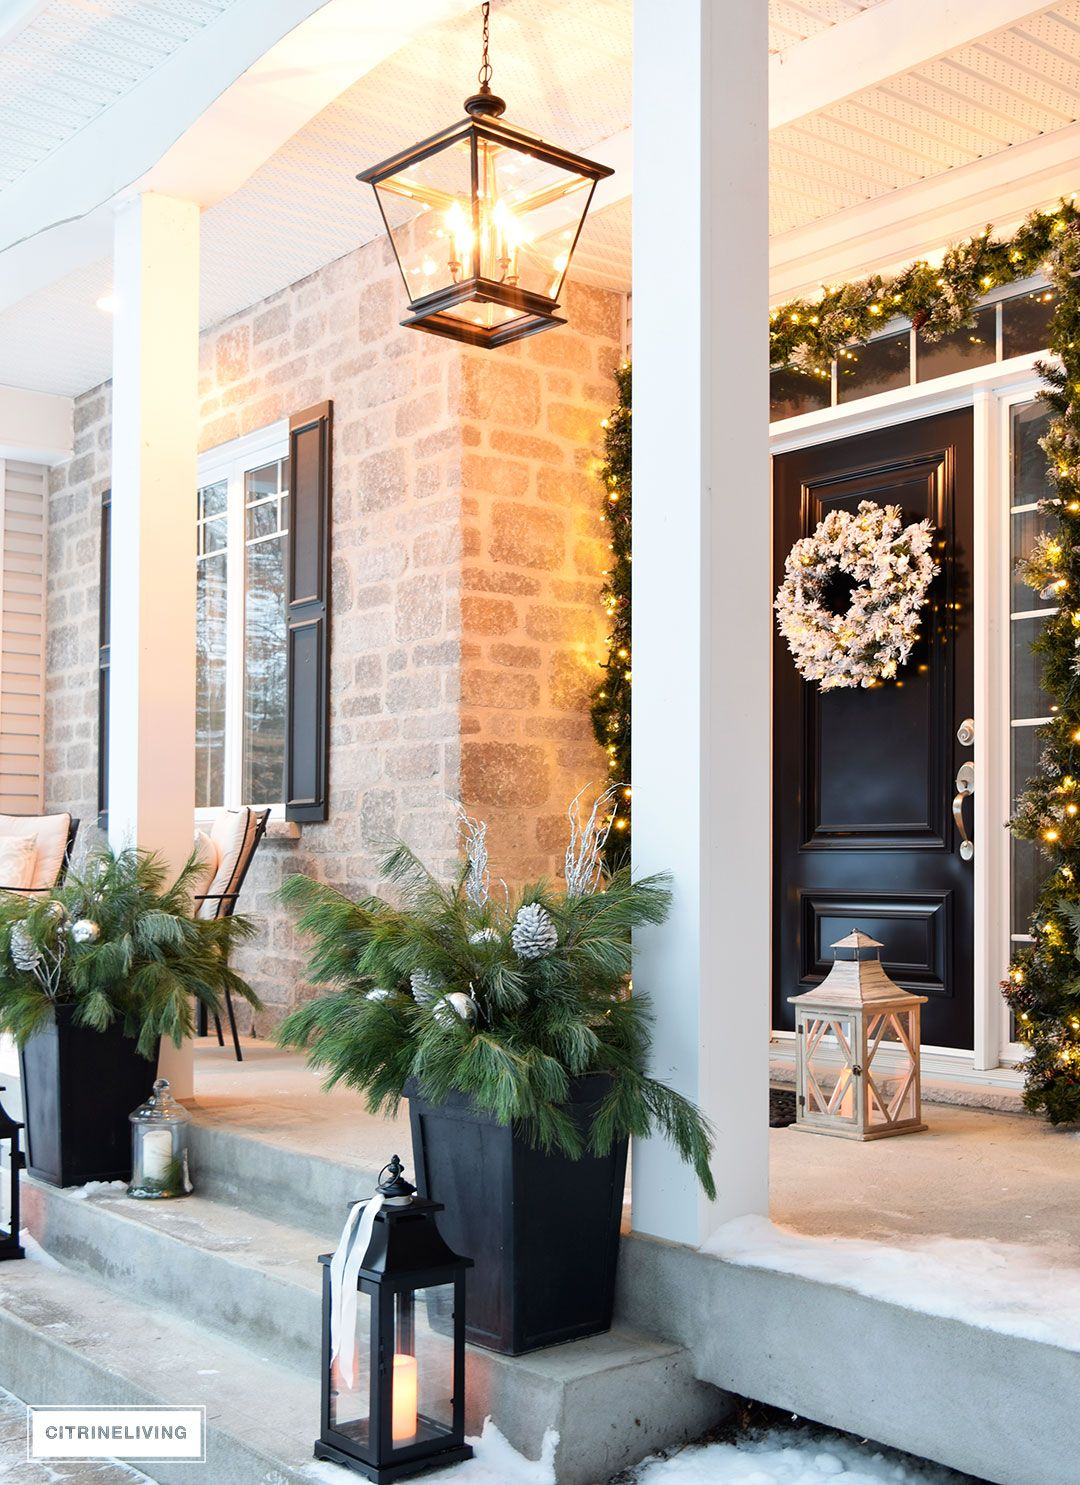 Outdoor Christmas Decor And New Lighting That Has A Timeless Sensibility As Well Clic Elements For Unforgettable Curb Eal